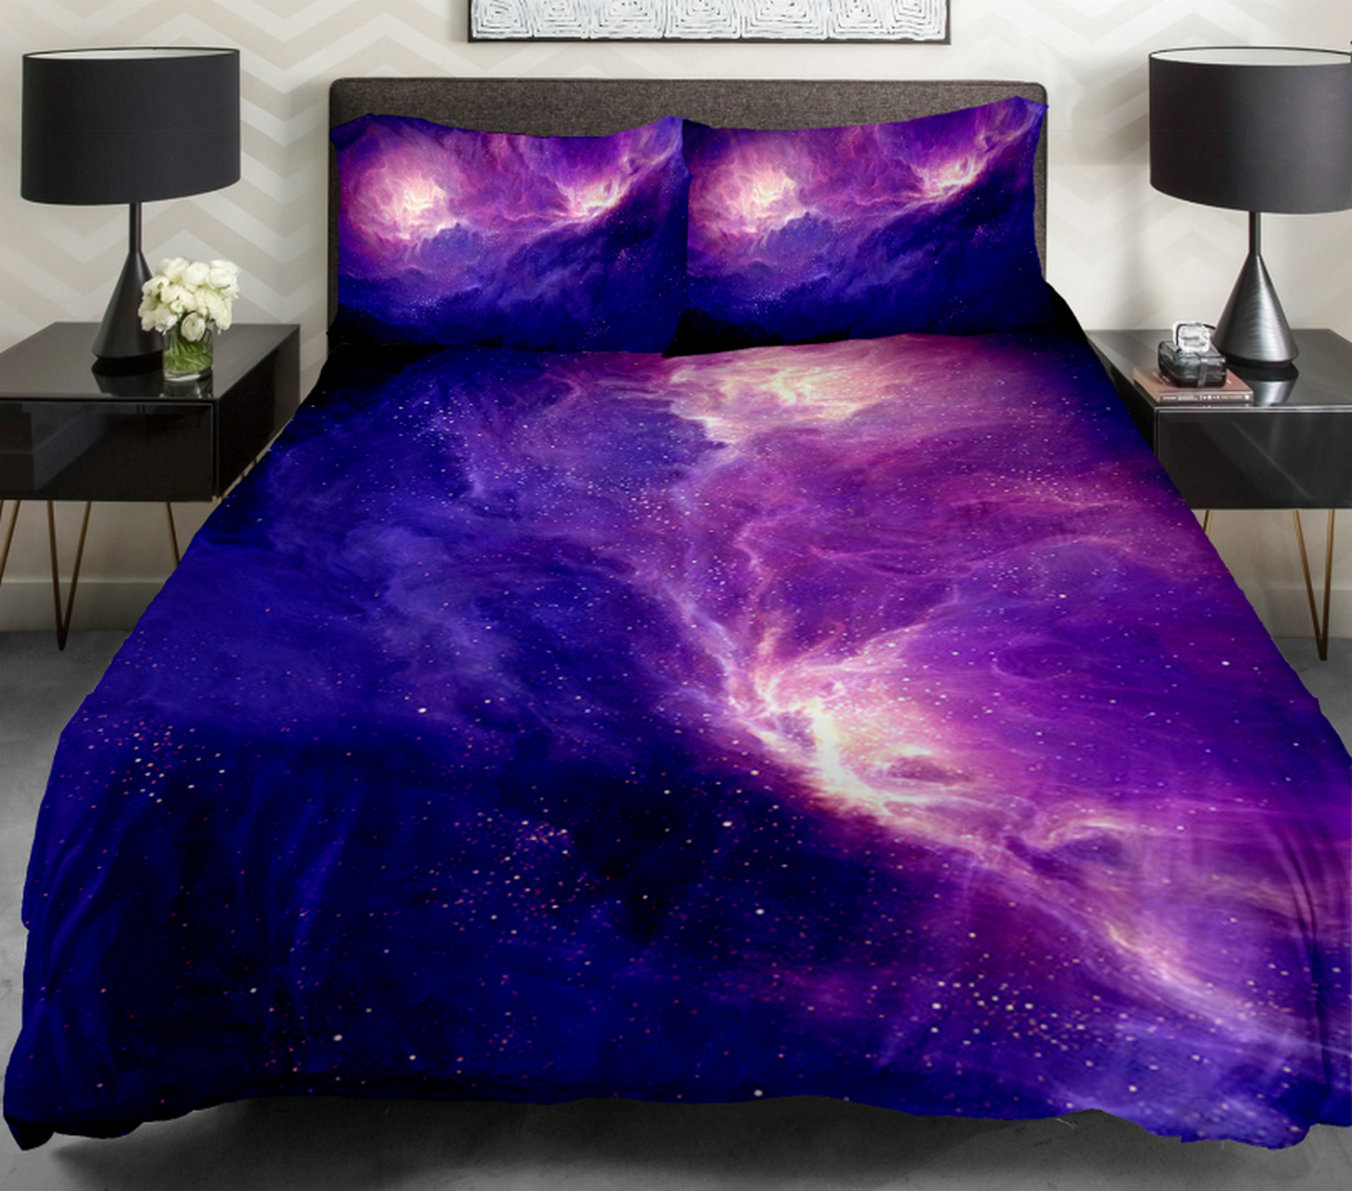 Anlye Daybed Bedding The Gift Ideas Set 1 Side Printing Out Space Quilt Duvet Covers Out Space Bed With 2 Throw Pillow Covers Sold By Anlye Com Storenvy Shop